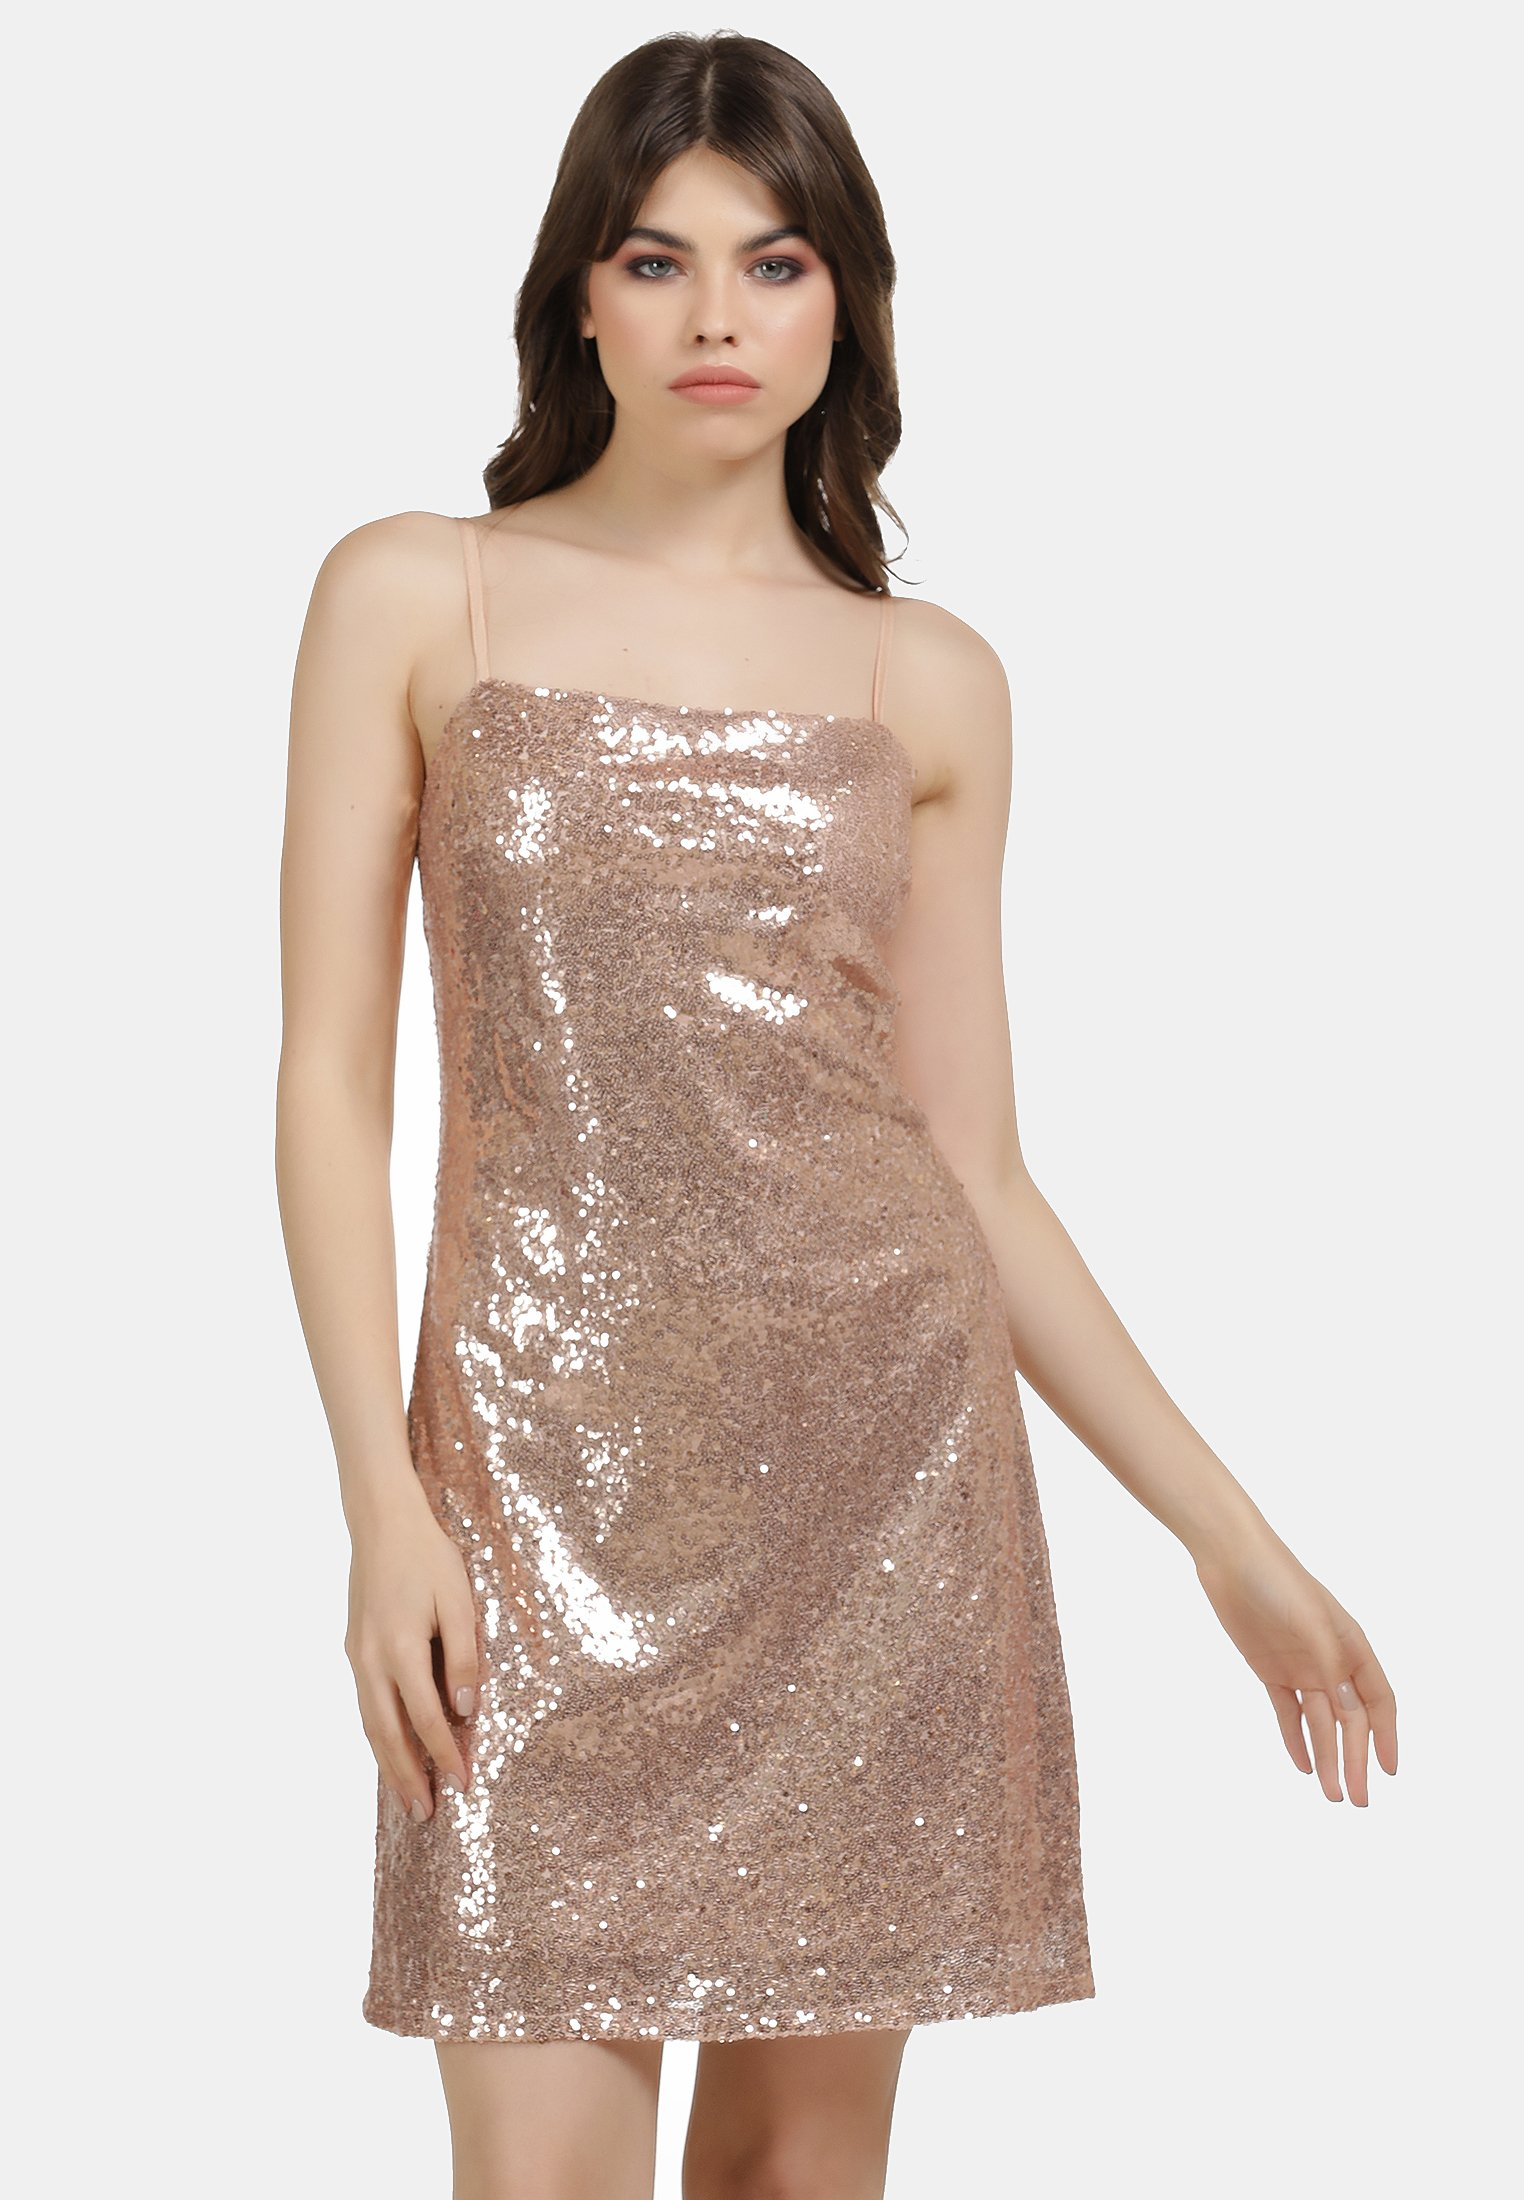 Fashionable Women's Clothing myMo PAILLETTENKLEID Cocktail dress / Party dress rosa gold YIsDPuyeV